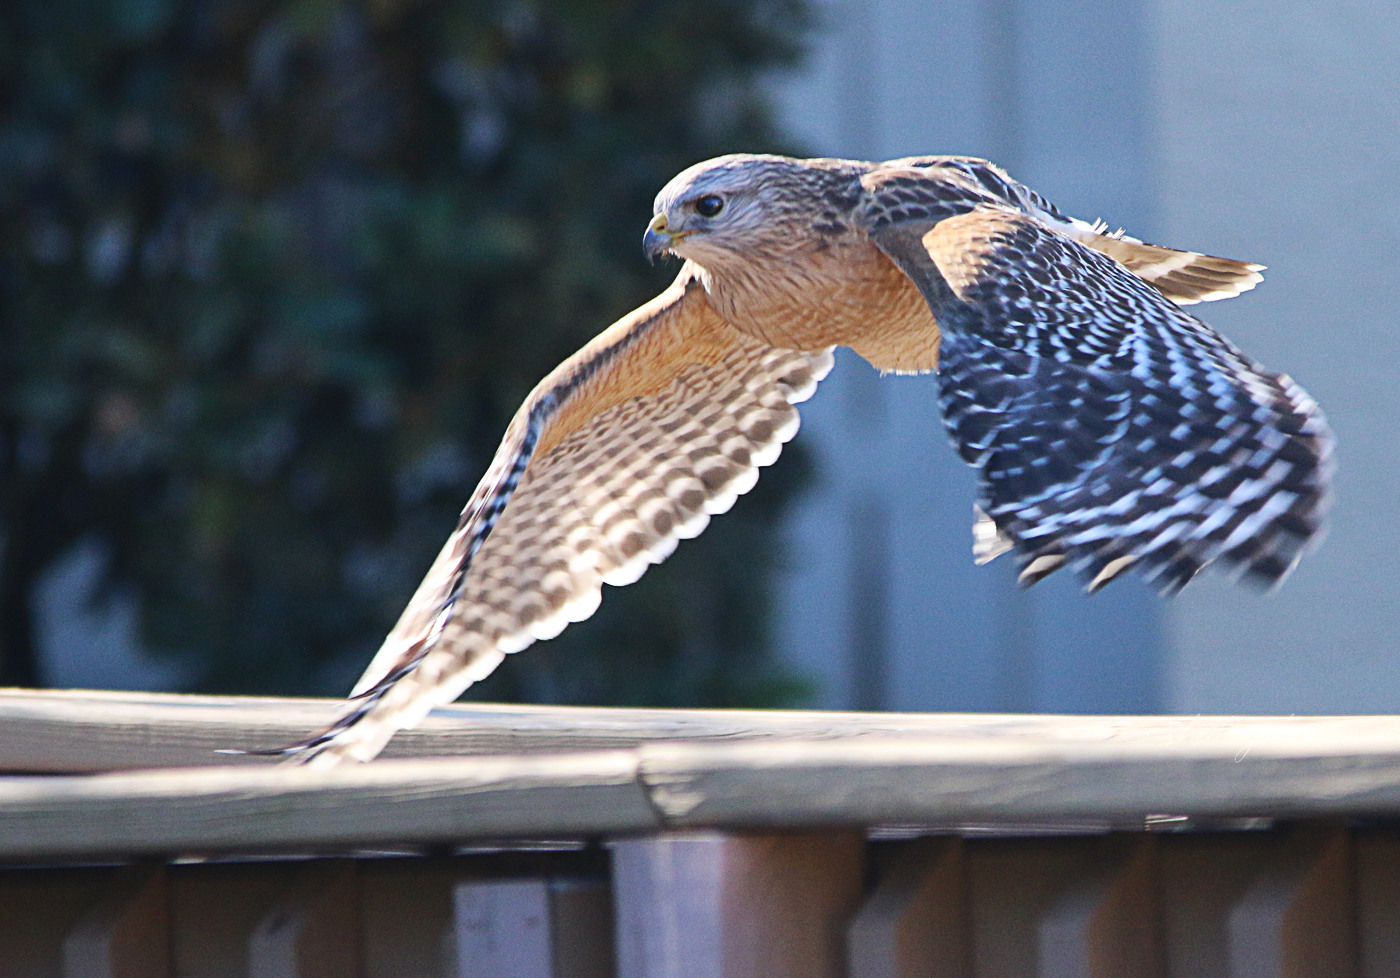 This Red-Shouldered Hawk Spent An Hour Or So In The Back Yard. It's Only Find Was A Juicy Worm Which Seemed A Bit Small To Me. Apparently, He Agreed, As He Went Off To More Fruitful Feeding Grounds.